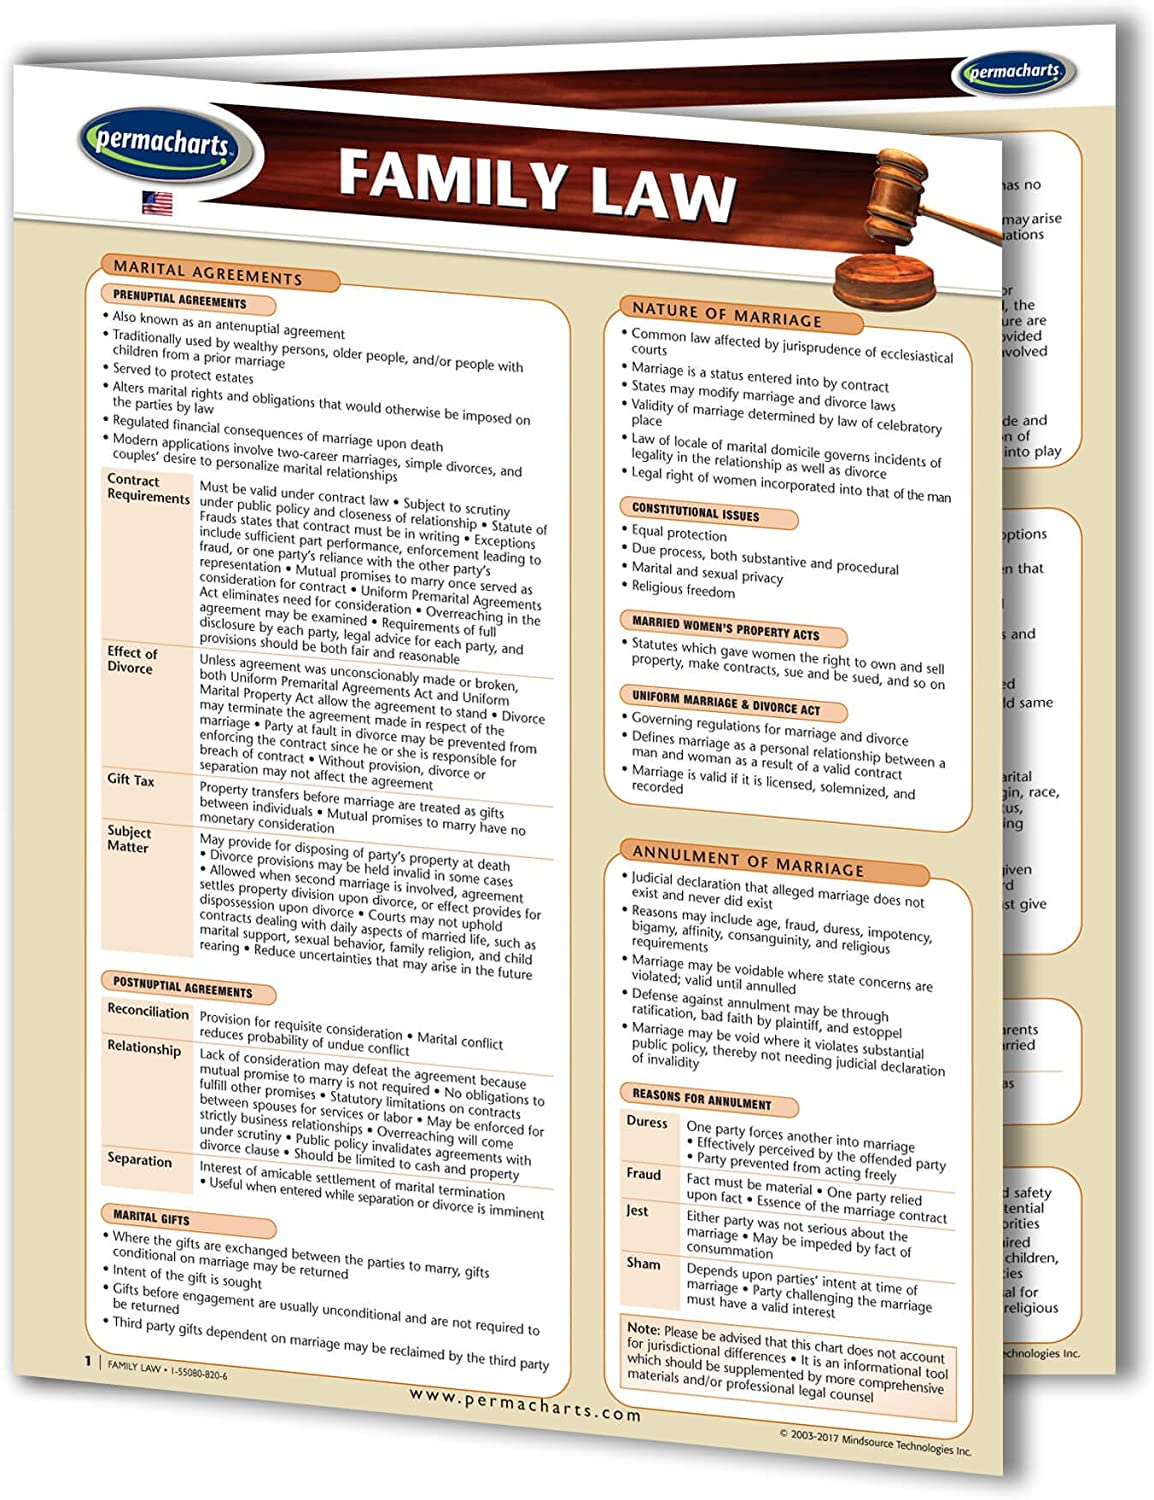 Family Law Guide - USA - Legal Quick Reference Guide by Permacharts